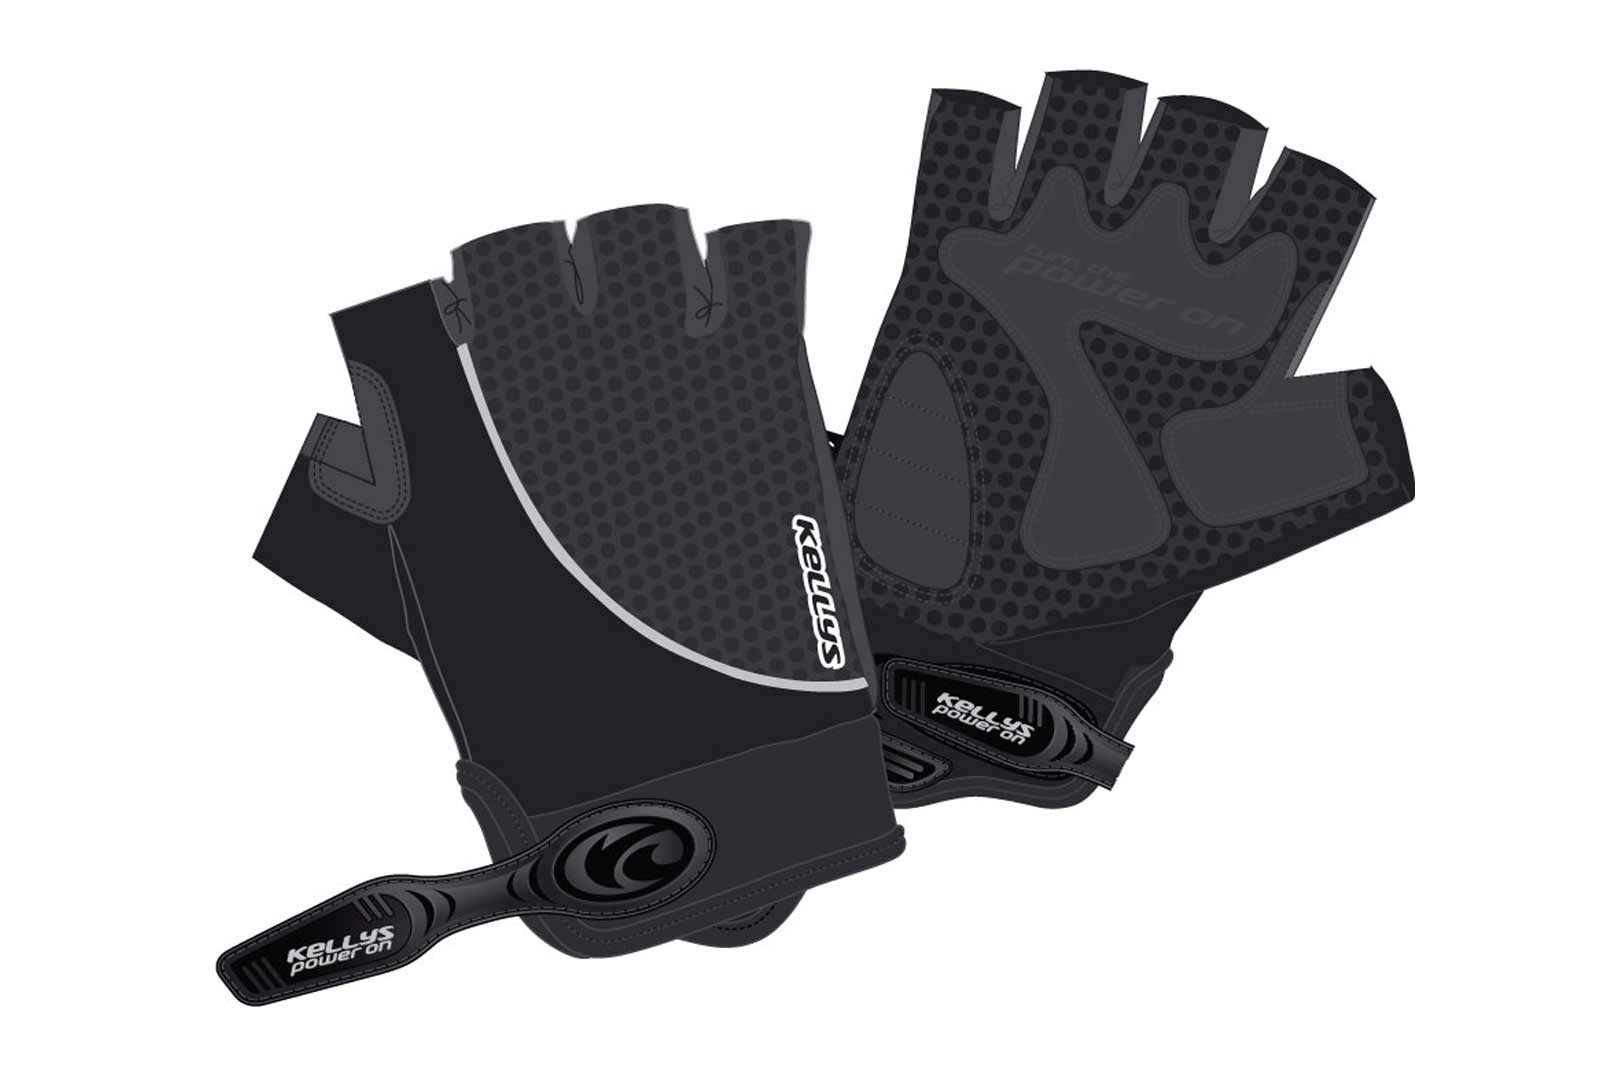 Handschuhe SEASON black M - Mile-Multisport